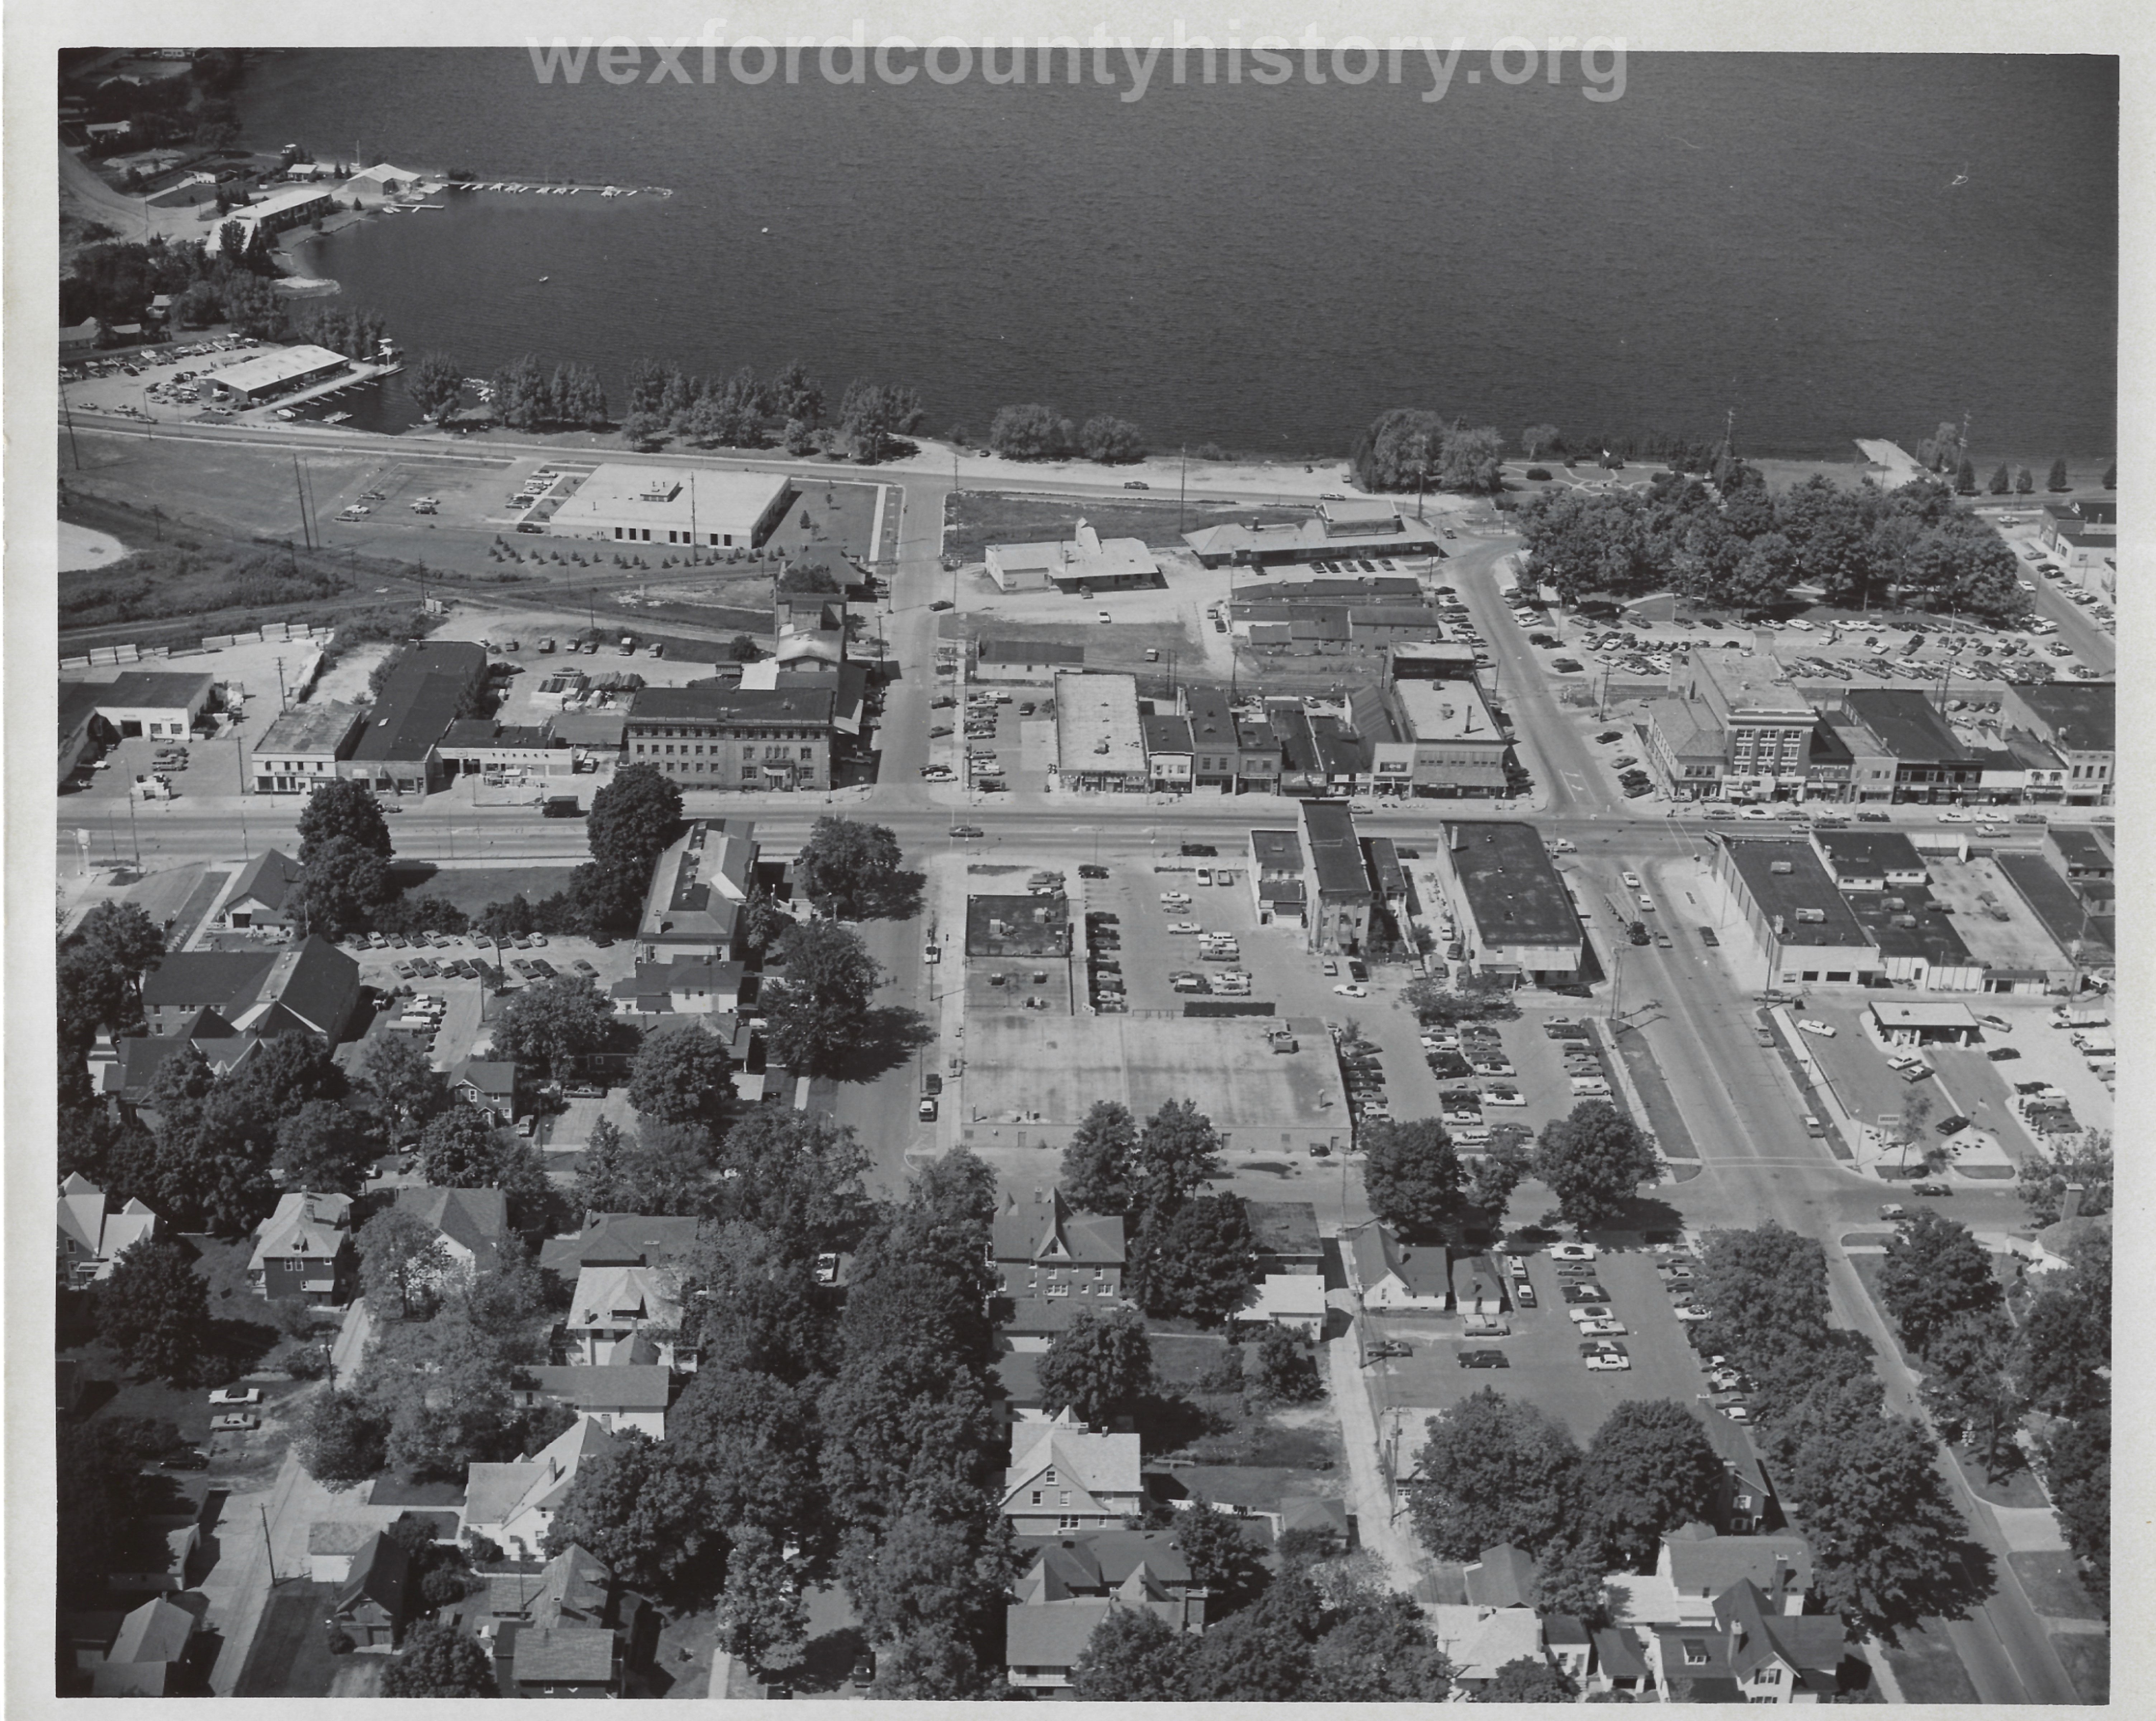 South Lake Street, South Mitchell Street, South Shelby, Cass Street, Chapin, Lyric, YMCA